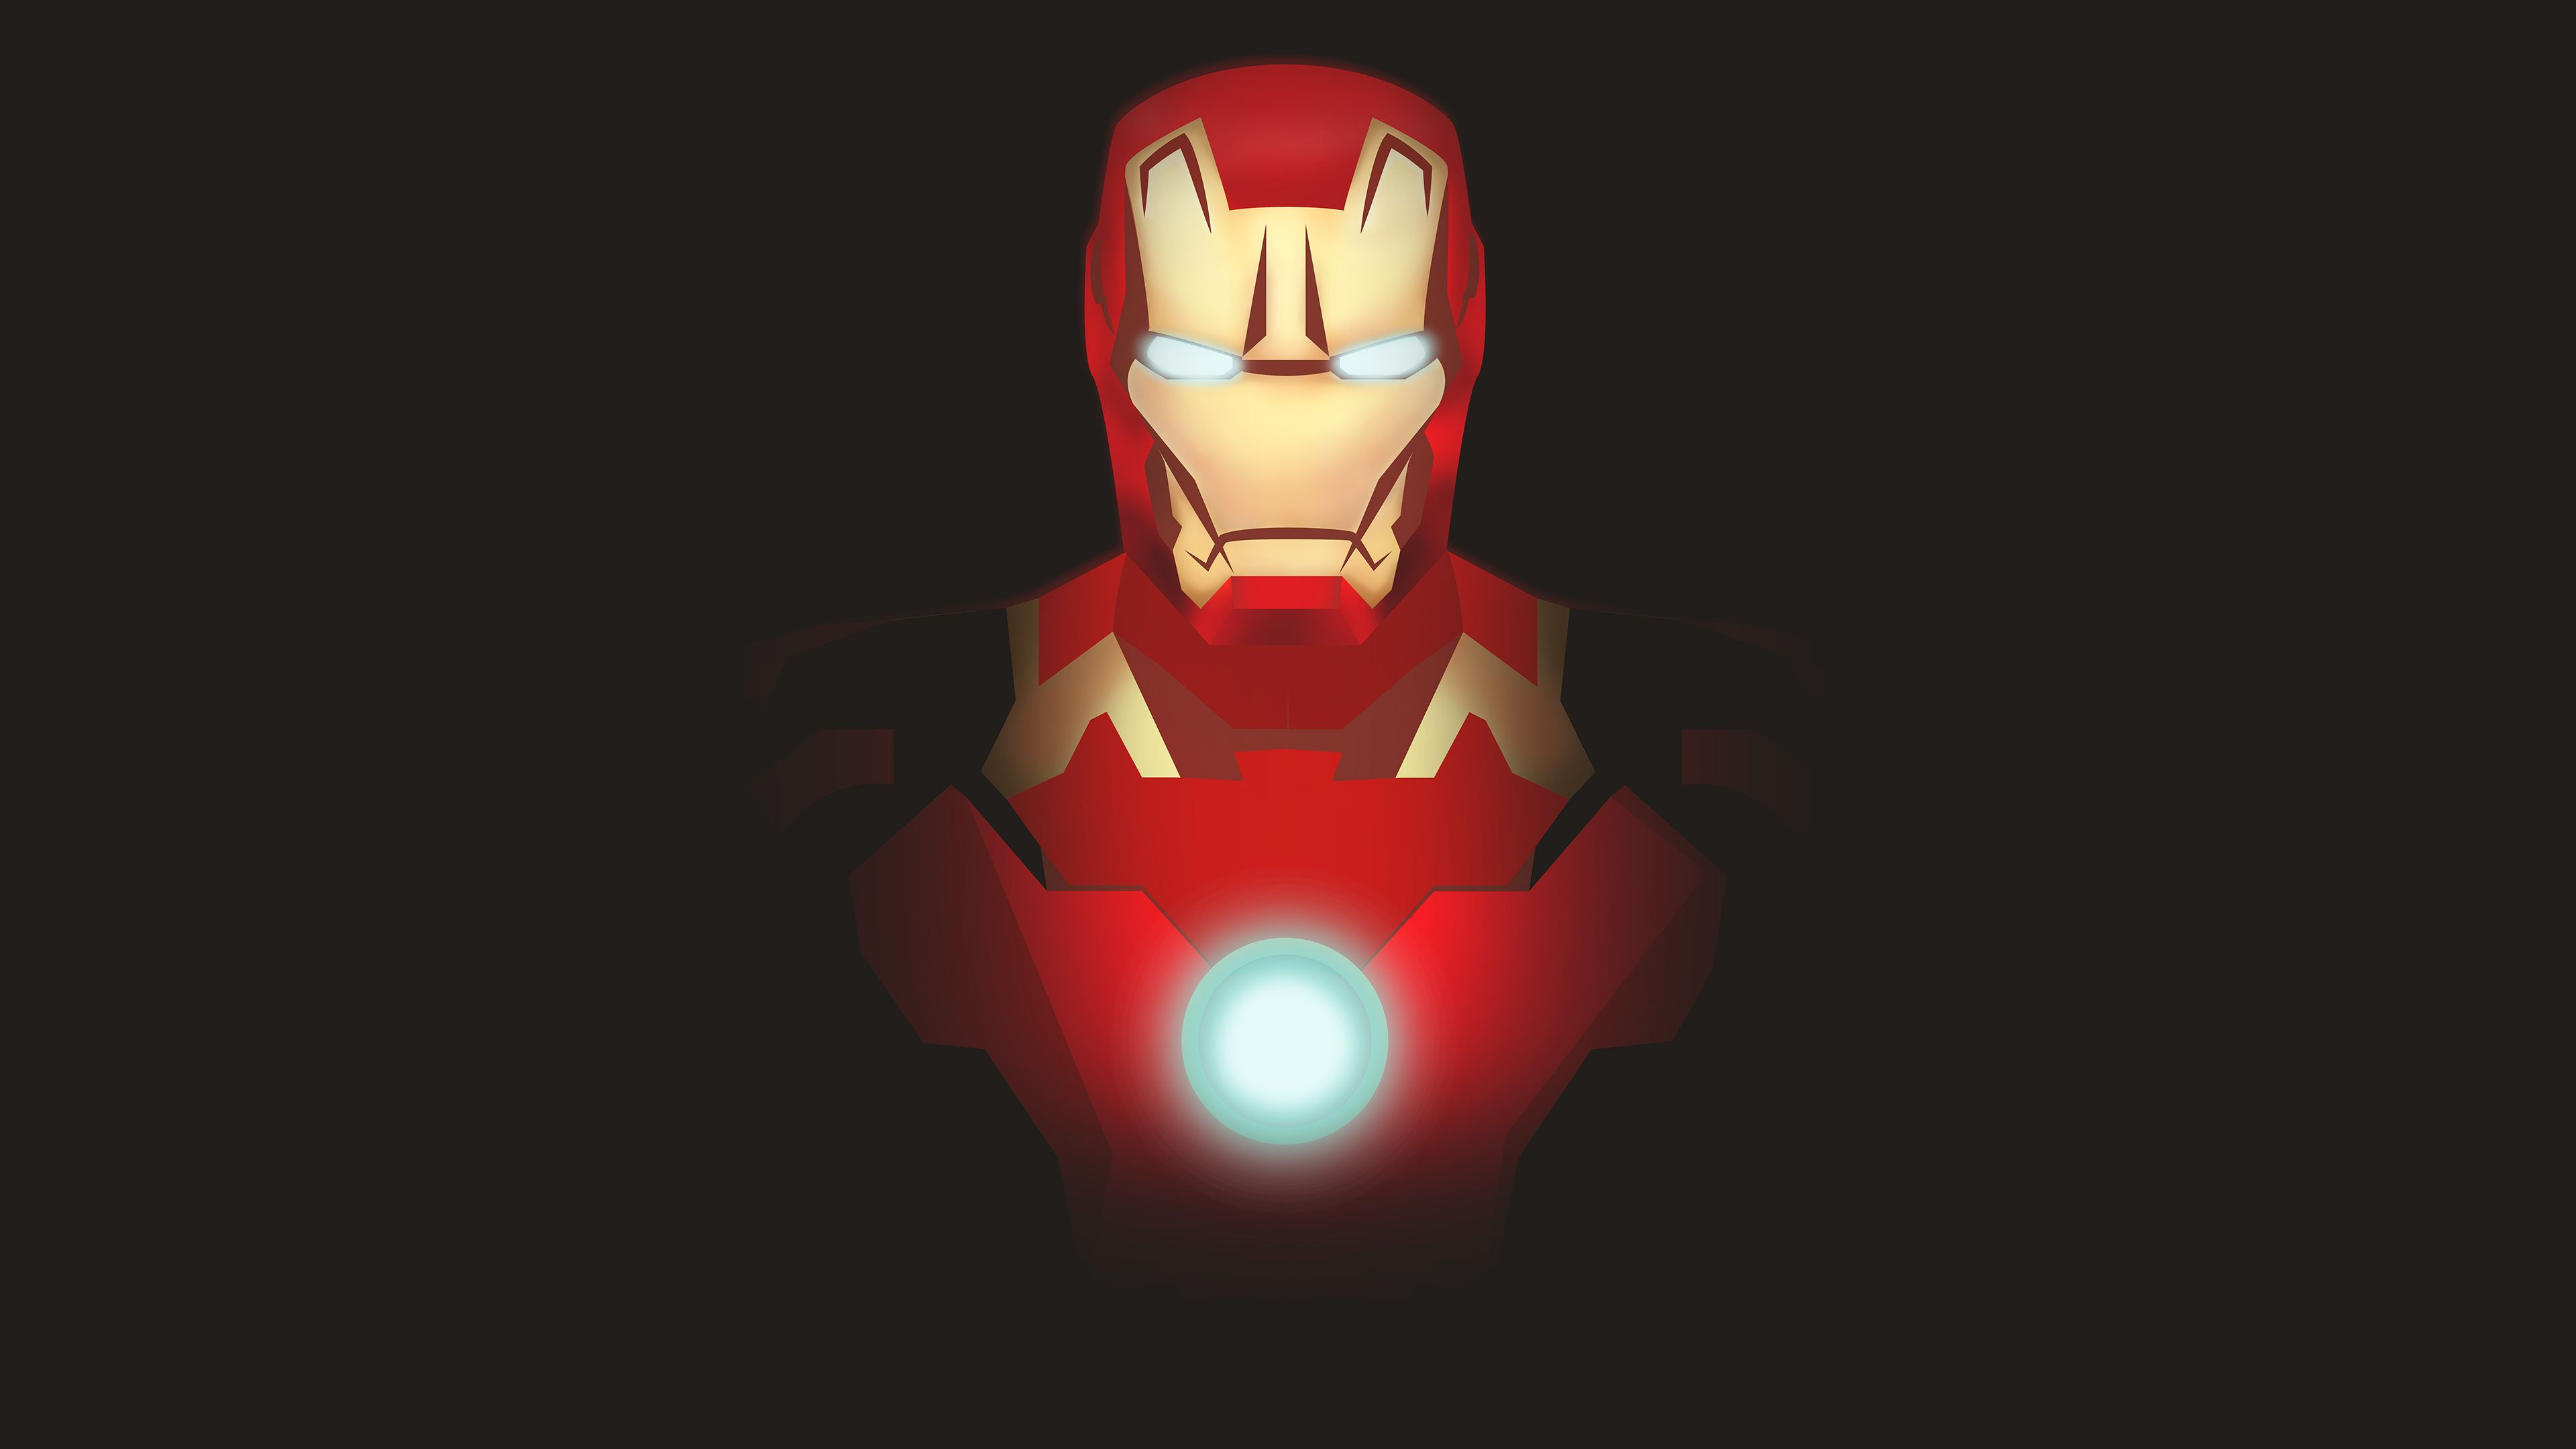 Iron Man Illustration Superheroes Wallpapers Iron Man Wallpapers Hd Wallpapers Digital Art Wallpapers Behance Iron Man Wallpaper Iron Man Man Illustration